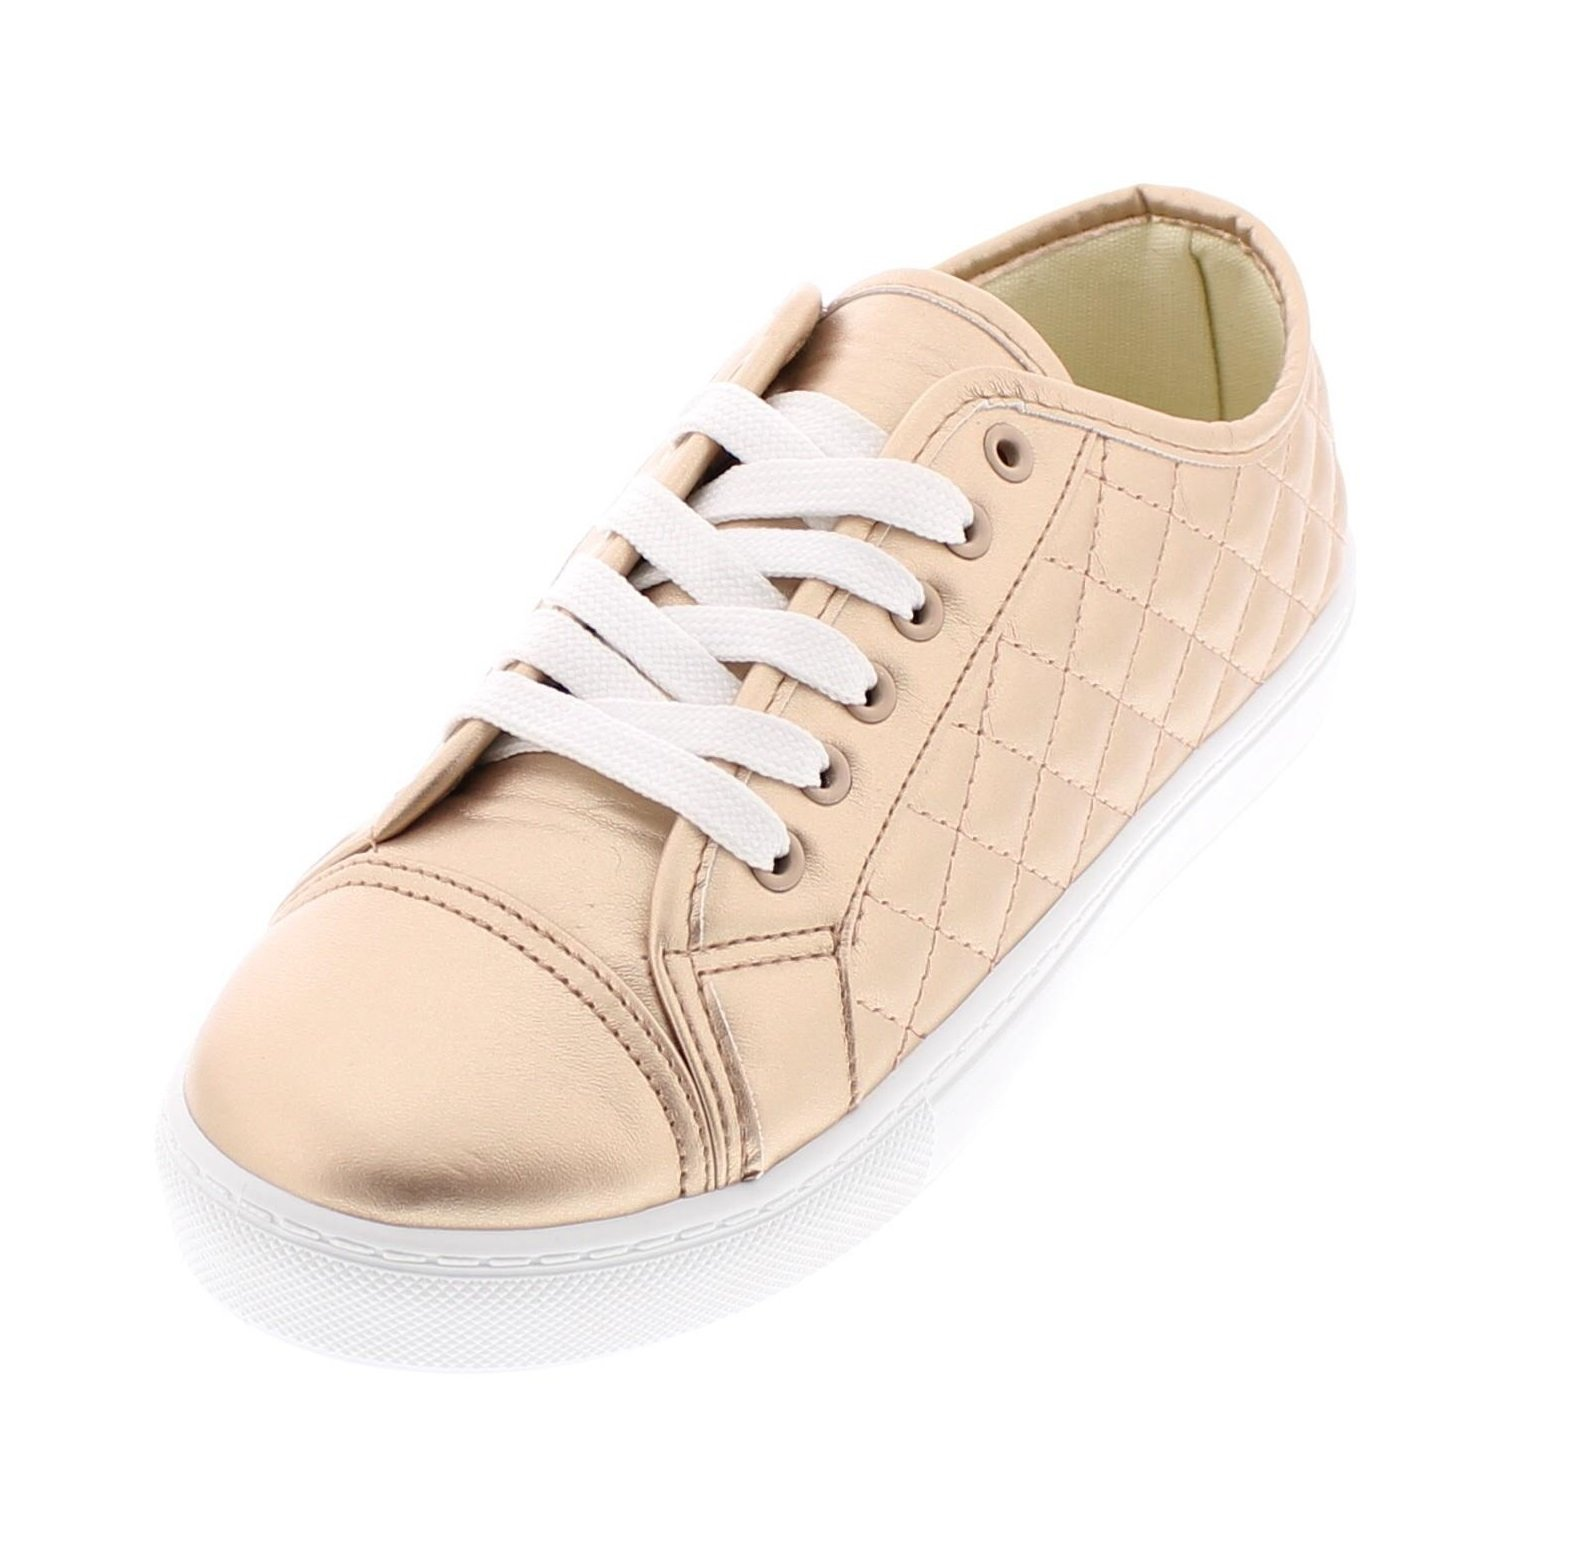 Gold Toe Women's Classic Lace Up Low Top Fashion Walking Sneaker Casual Sporty Athletic Style Street Shoe Rose Gold 8 US